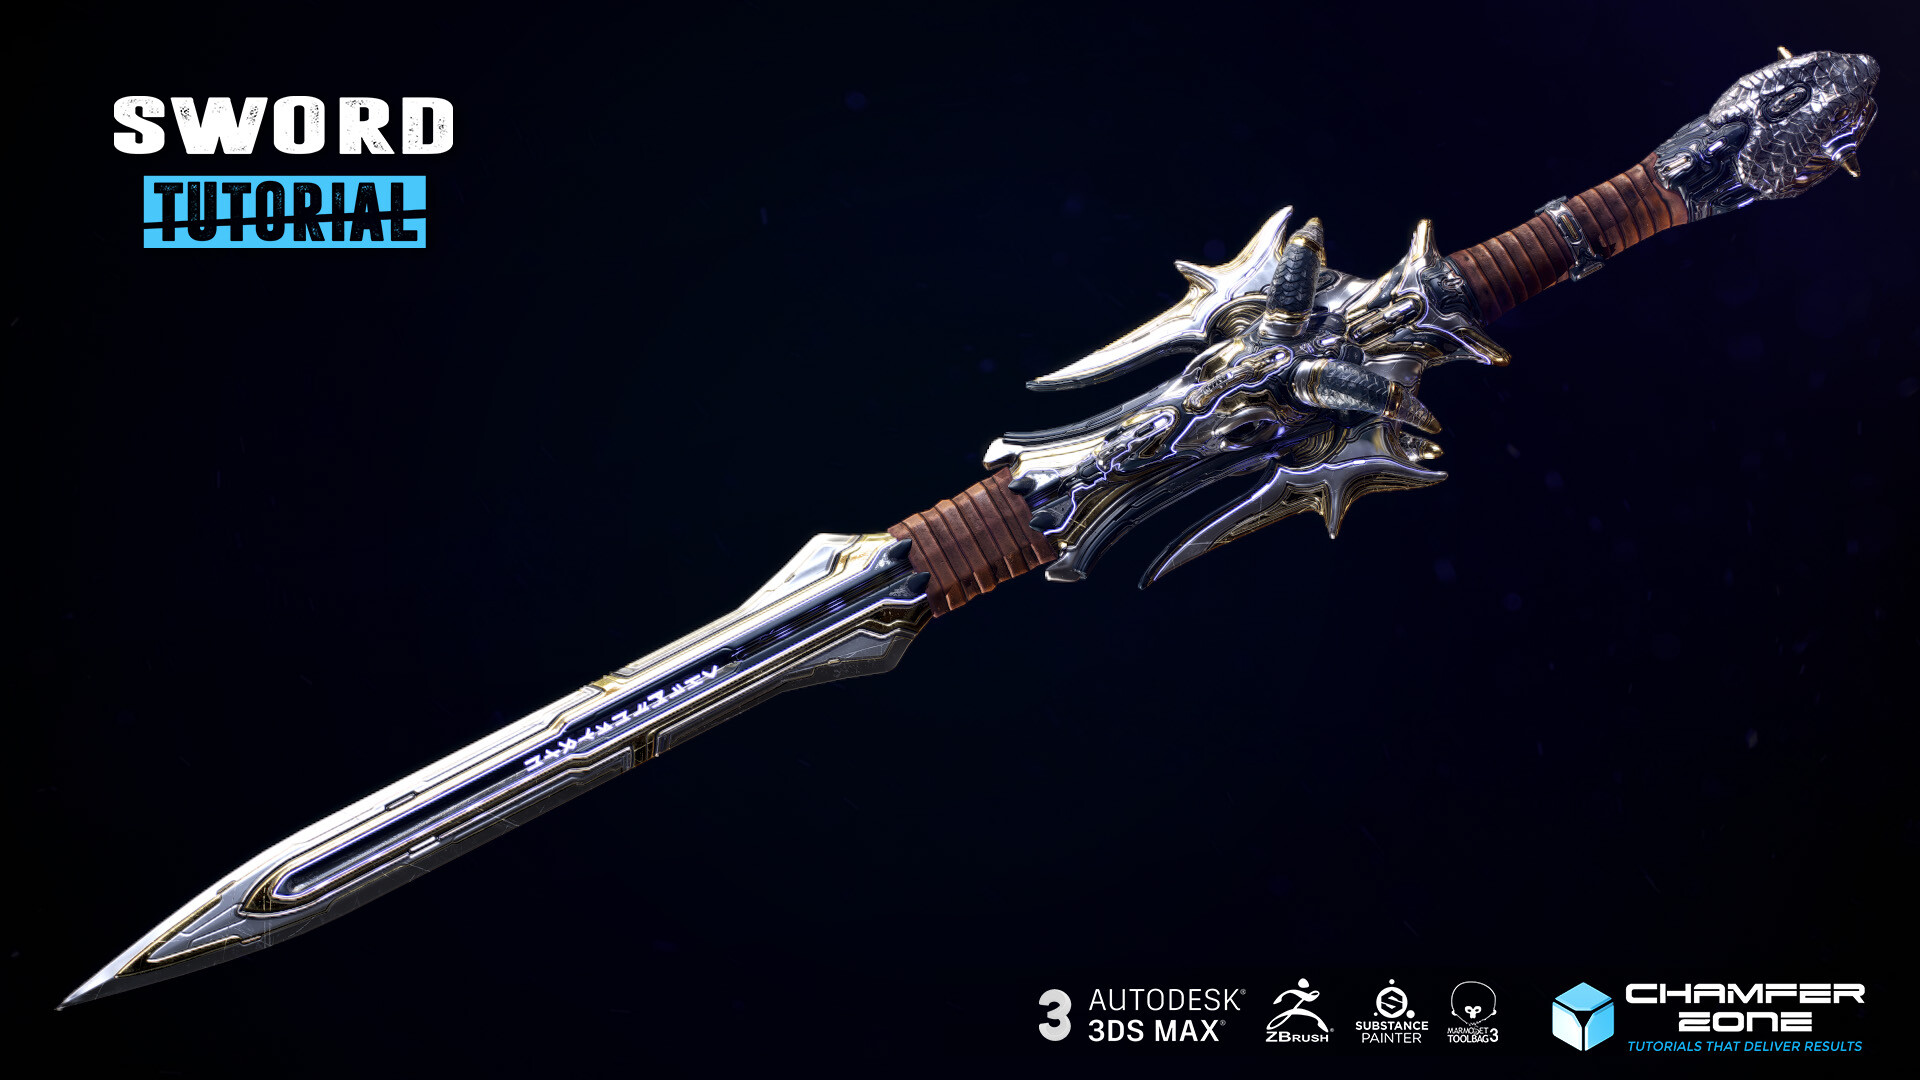 Tim bergholz chamferzone com chamferzone sword tutorial 3dsmax zbrush substance painter marmoset all